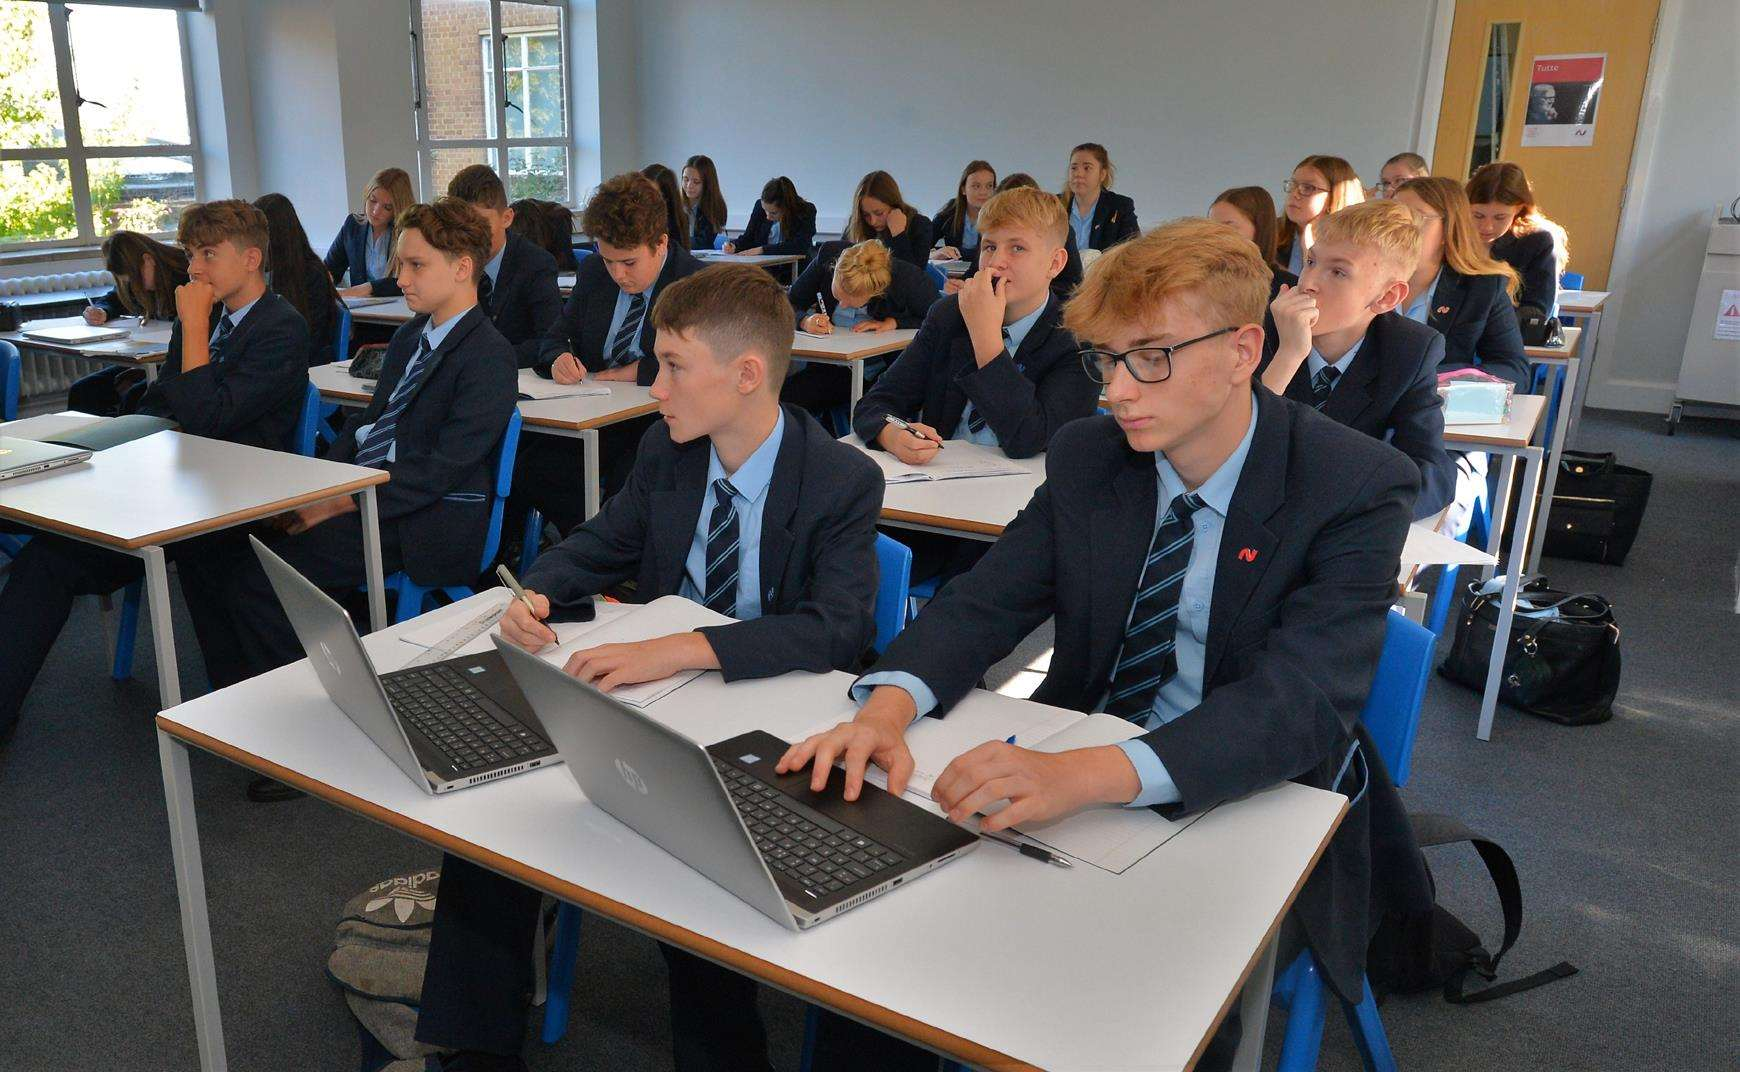 Pupils in one of the refurbished classrooms at Newmarket Academy